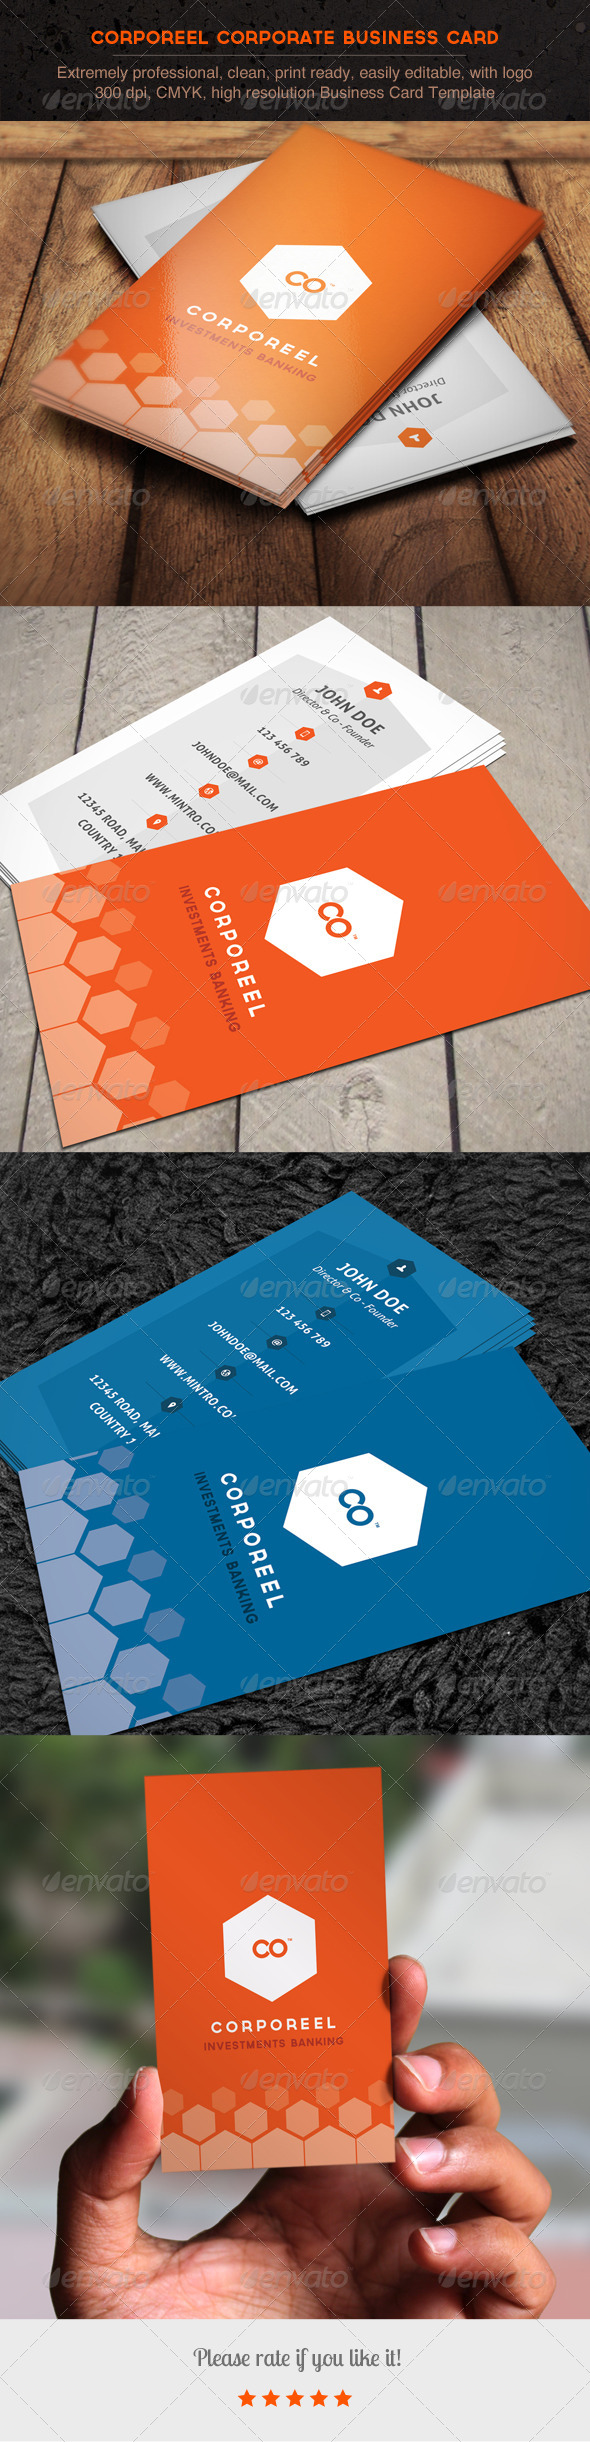 Corporeel Corporate Business Card - Corporate Business Cards